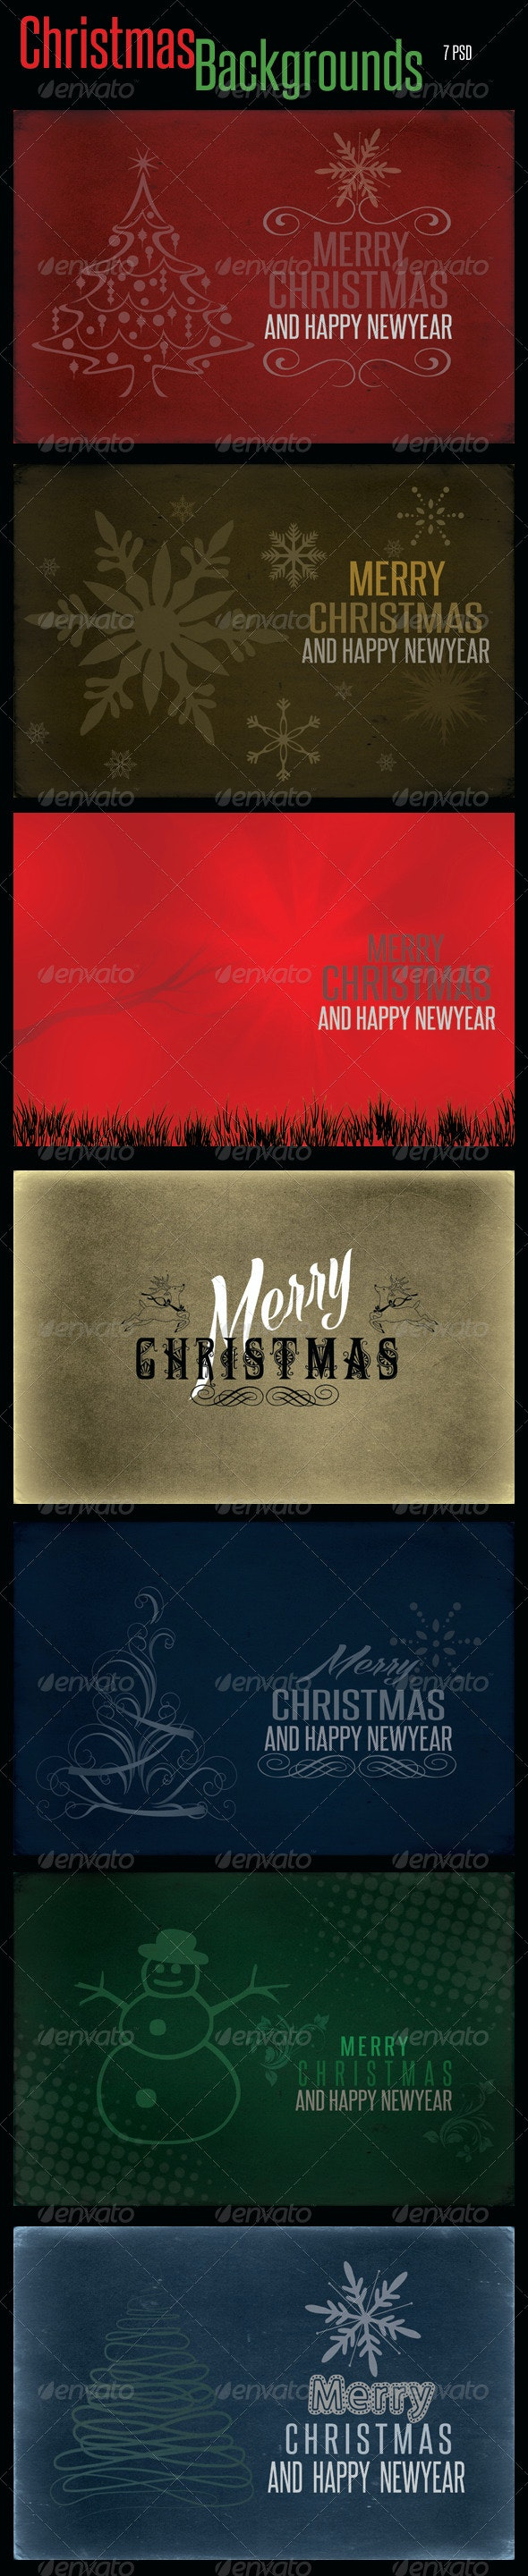 Christmas Backgrounds PSD Templates - Abstract Backgrounds